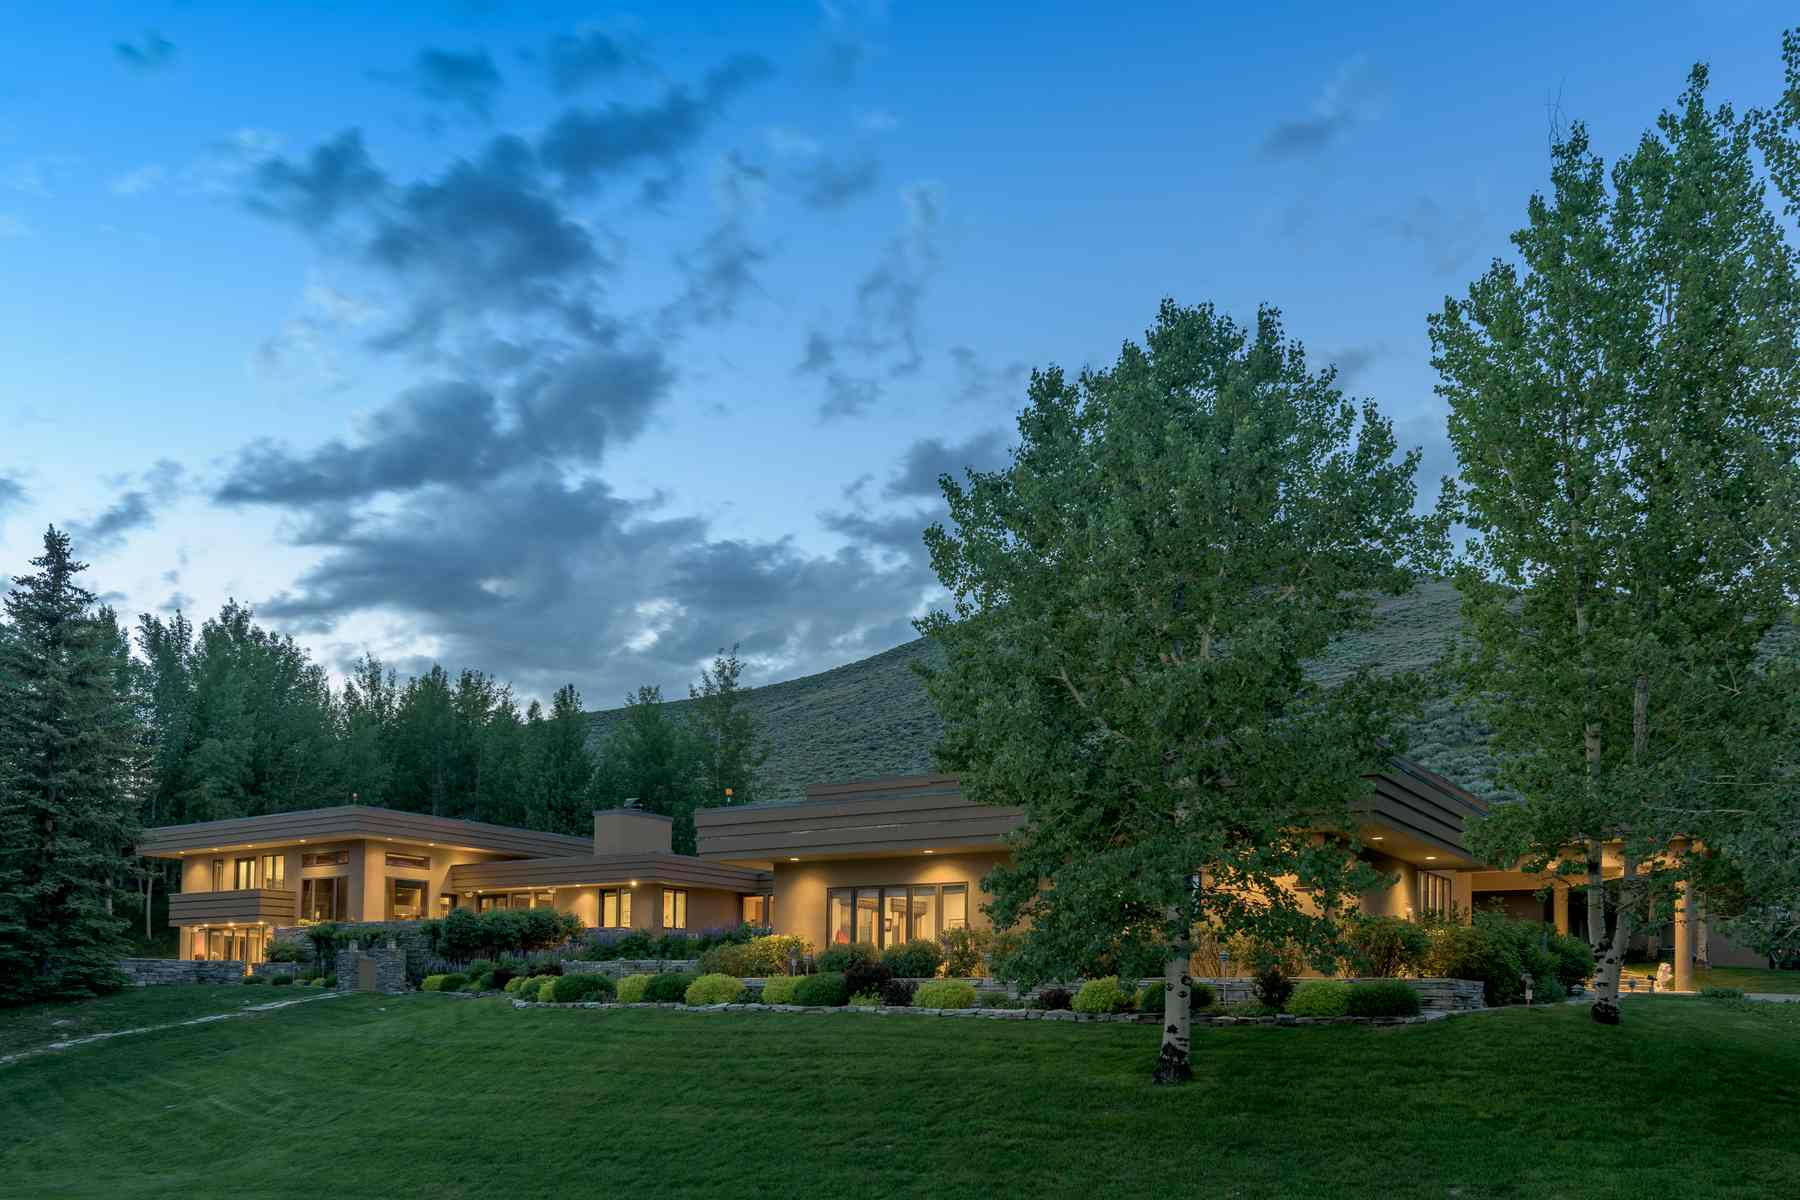 Casa Unifamiliar por un Venta en Spectacular Elevated Setting 455 N. Bigwood Drive, Ketchum, Idaho, 83340 Estados Unidos